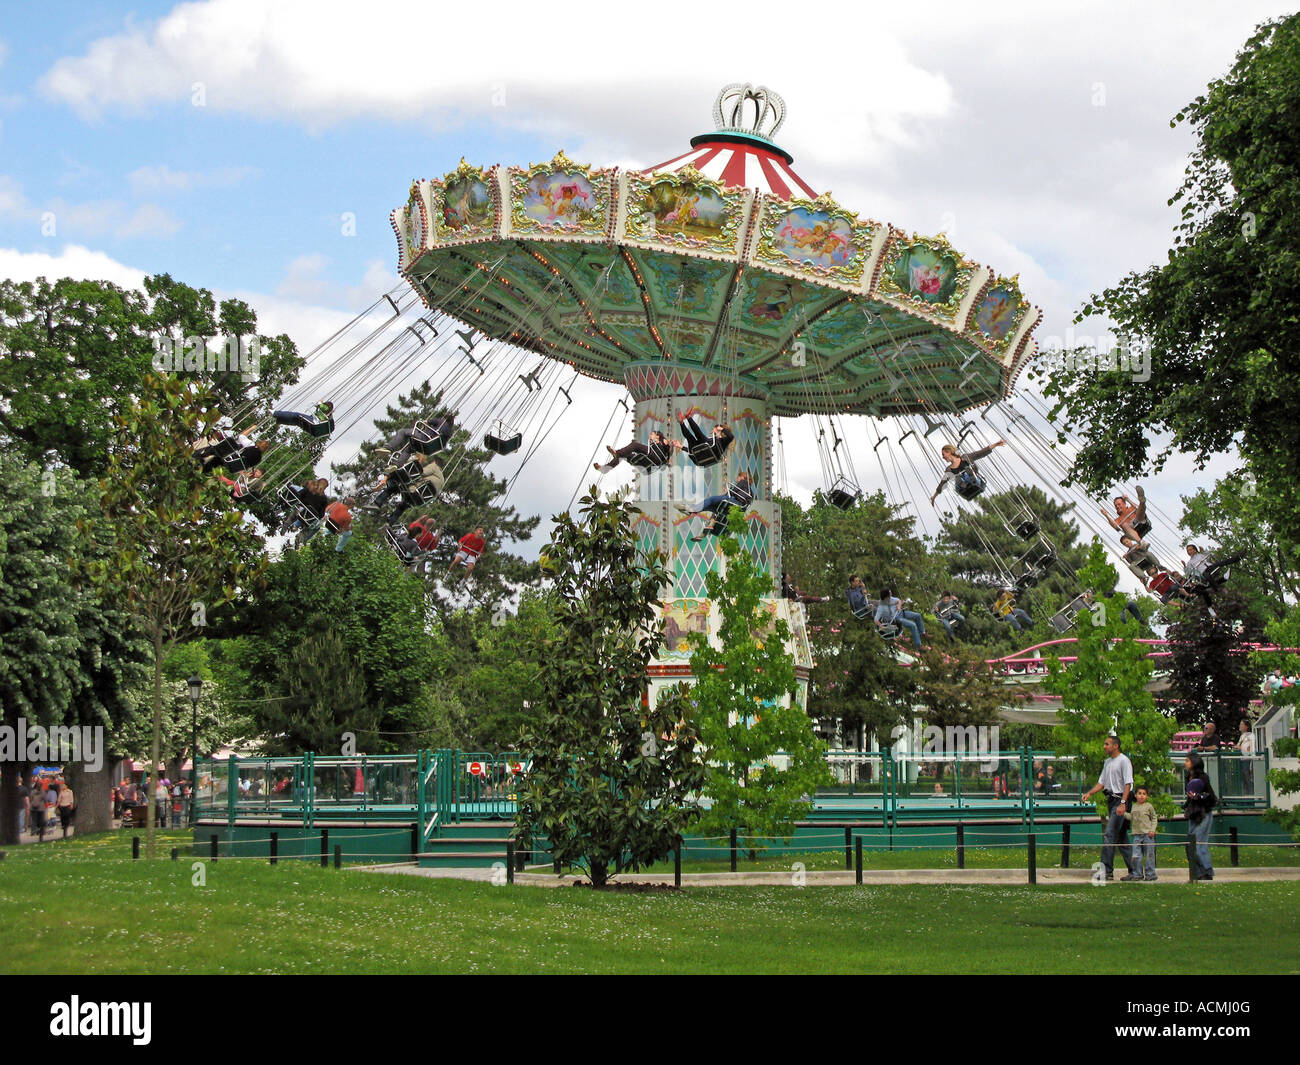 roundabout in le jardin d acclimatation paris france stock On jardin d acclimatation